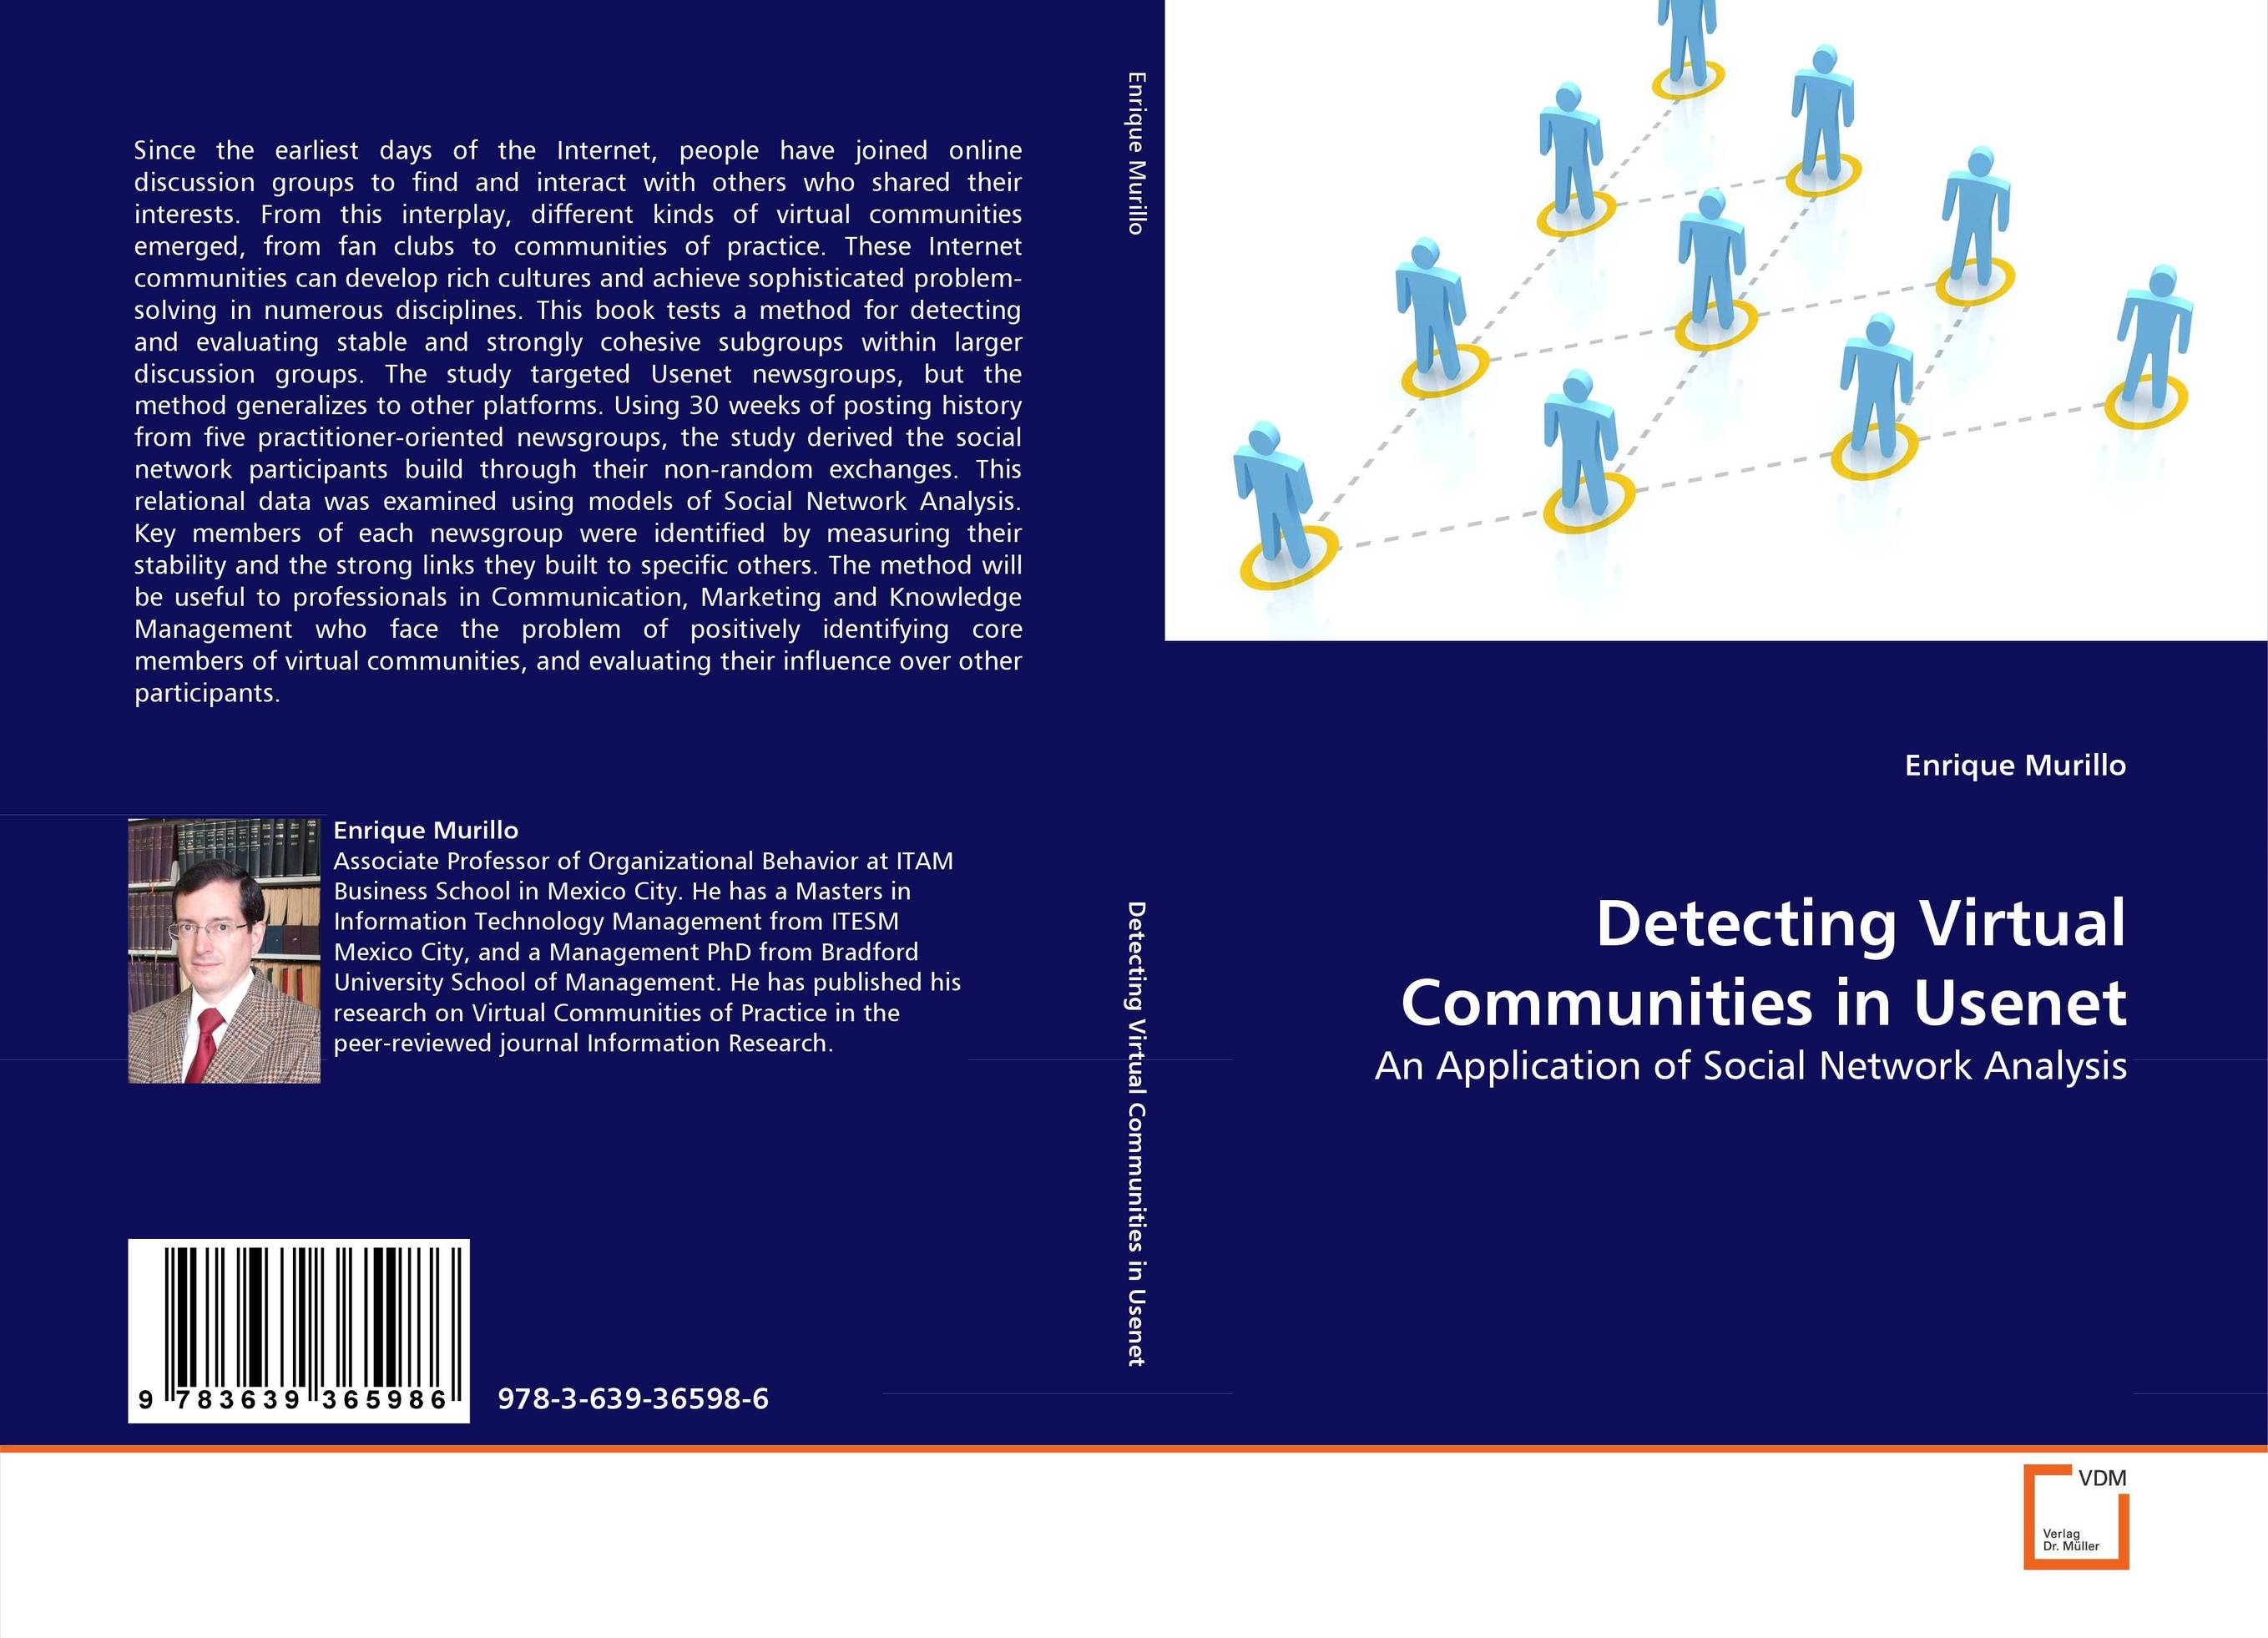 Detecting Virtual Communities in Usenet public parks – the key to livable communities